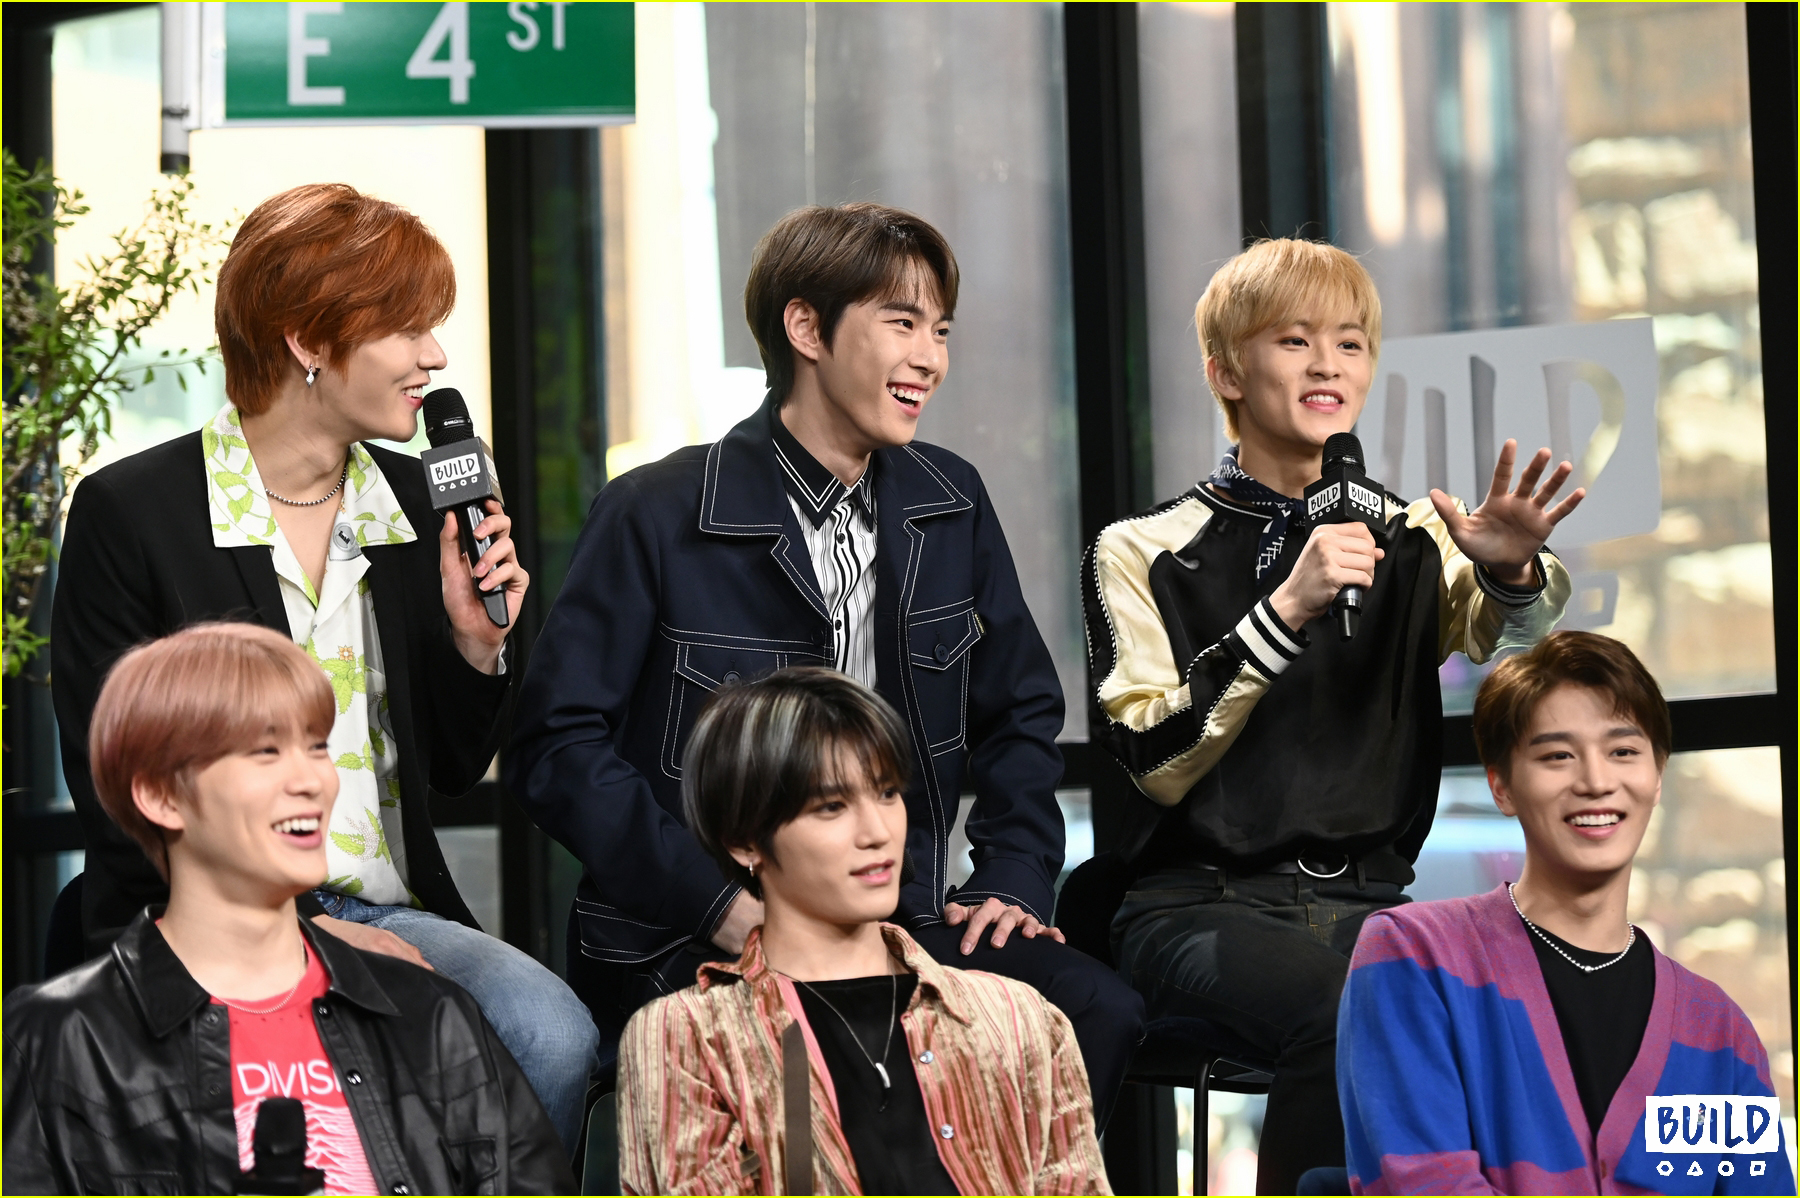 nct 127 look up to justin bieber as a role model 12